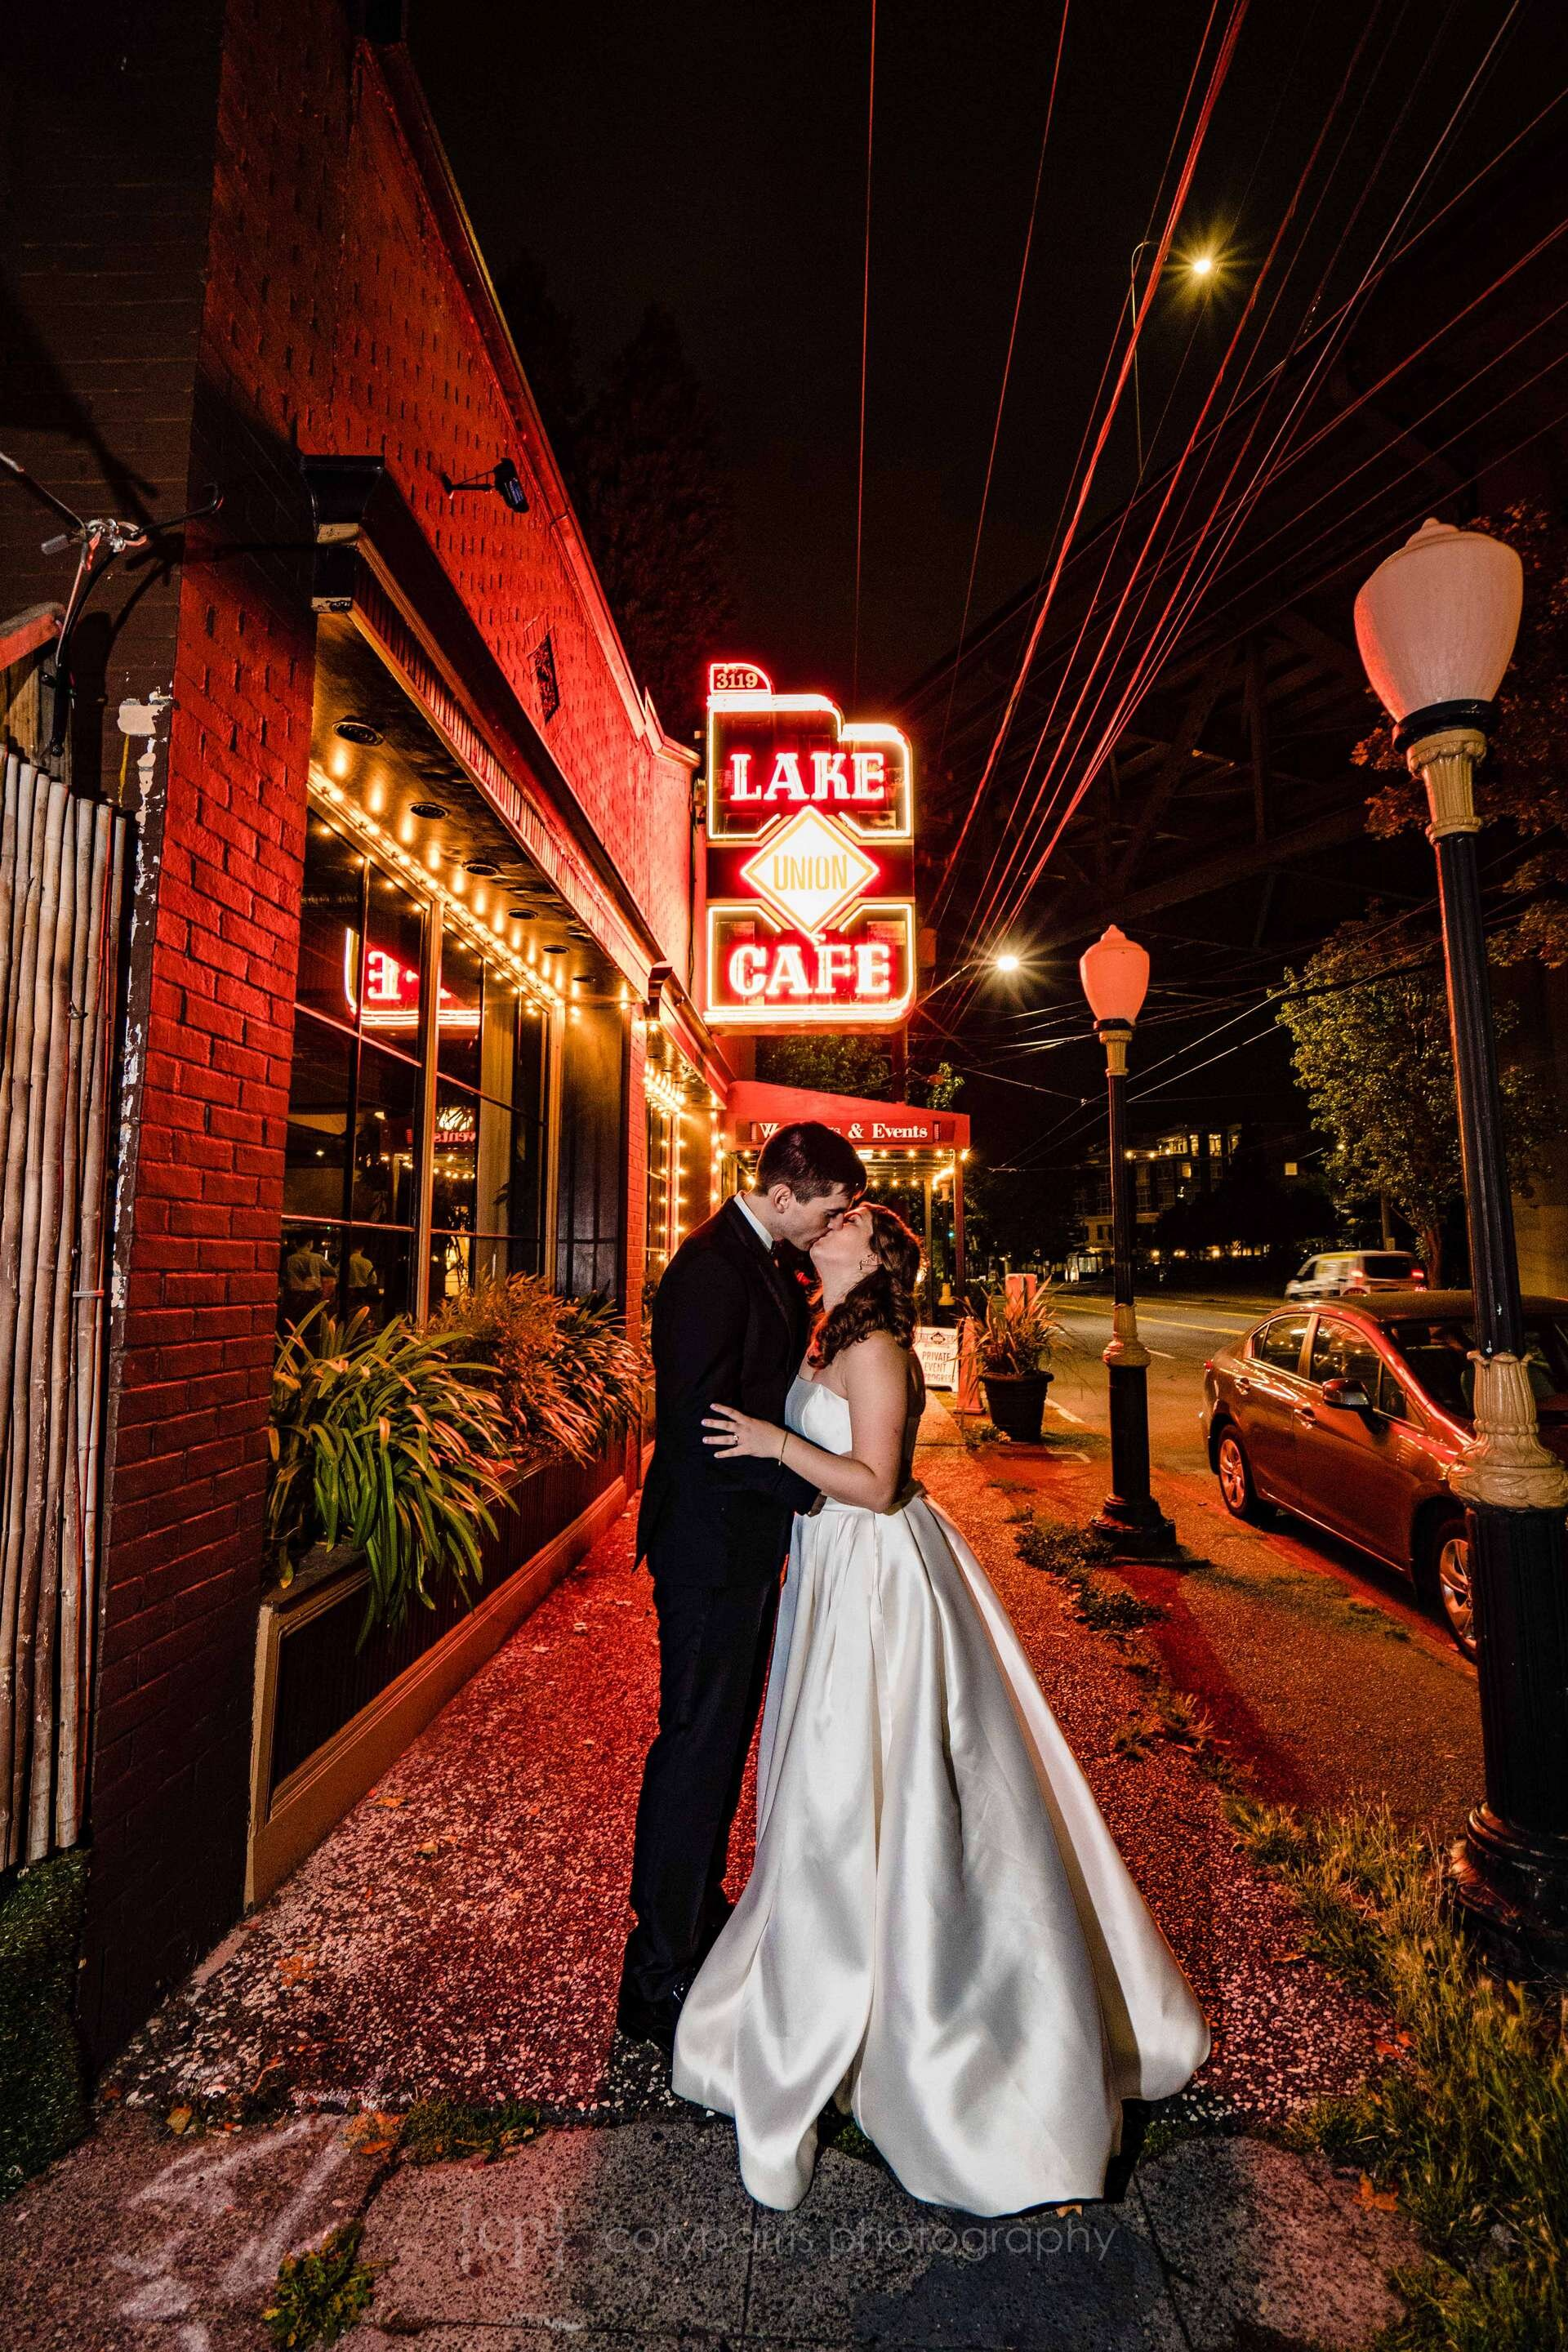 932-lake-union-cafe-wedding.jpg